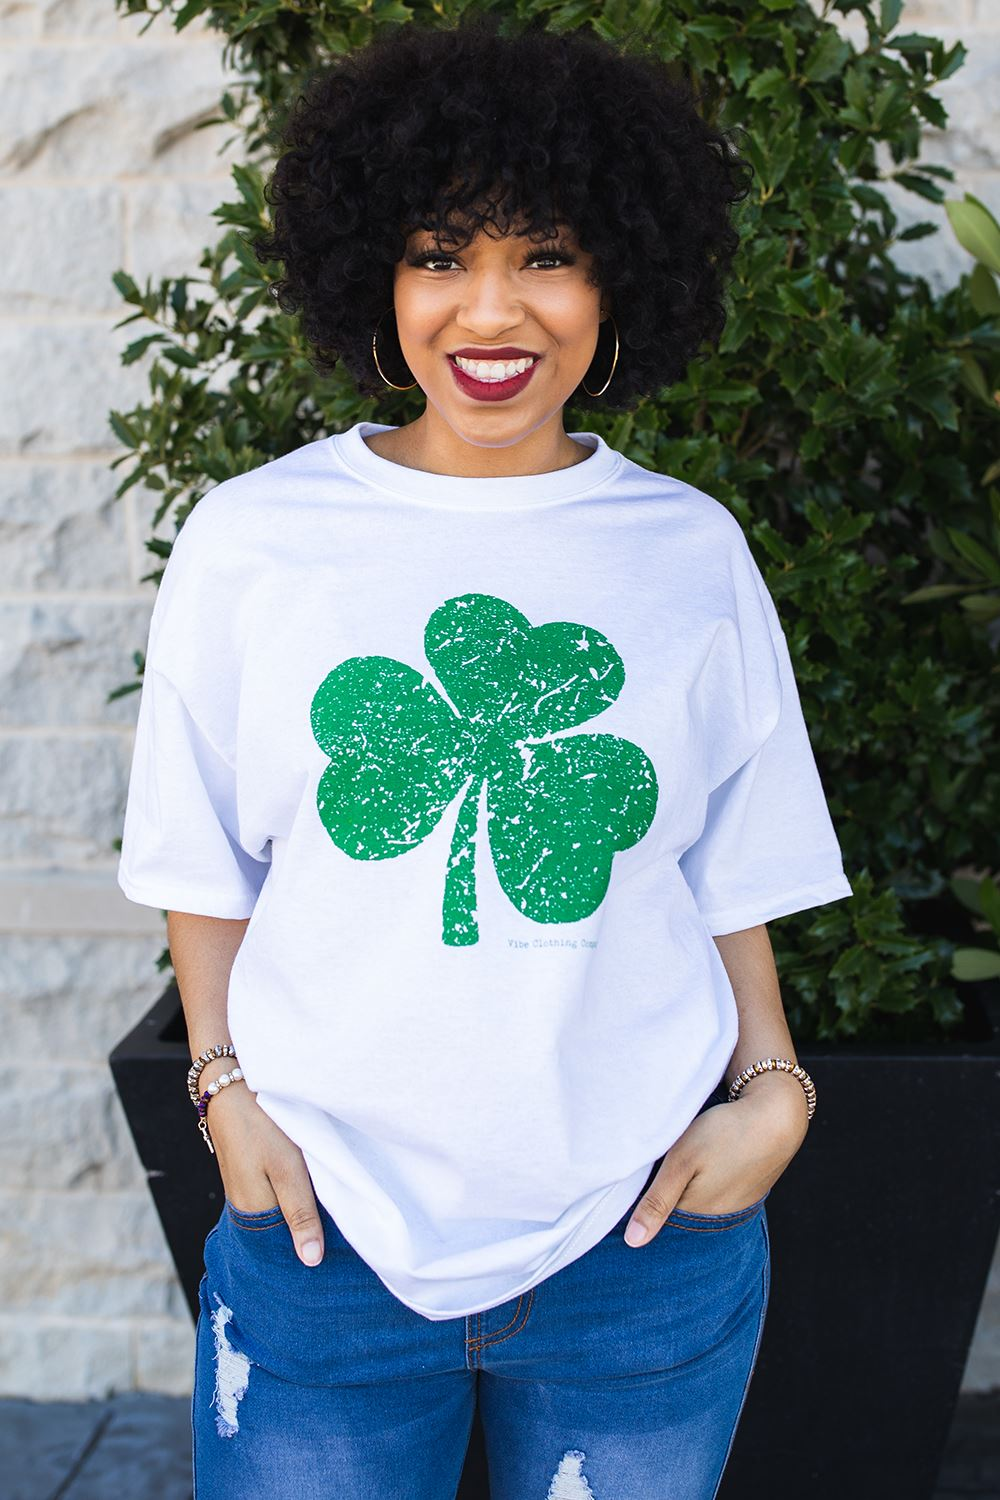 Distressed Shamrock Graphic Tee graphic tees Mark tee